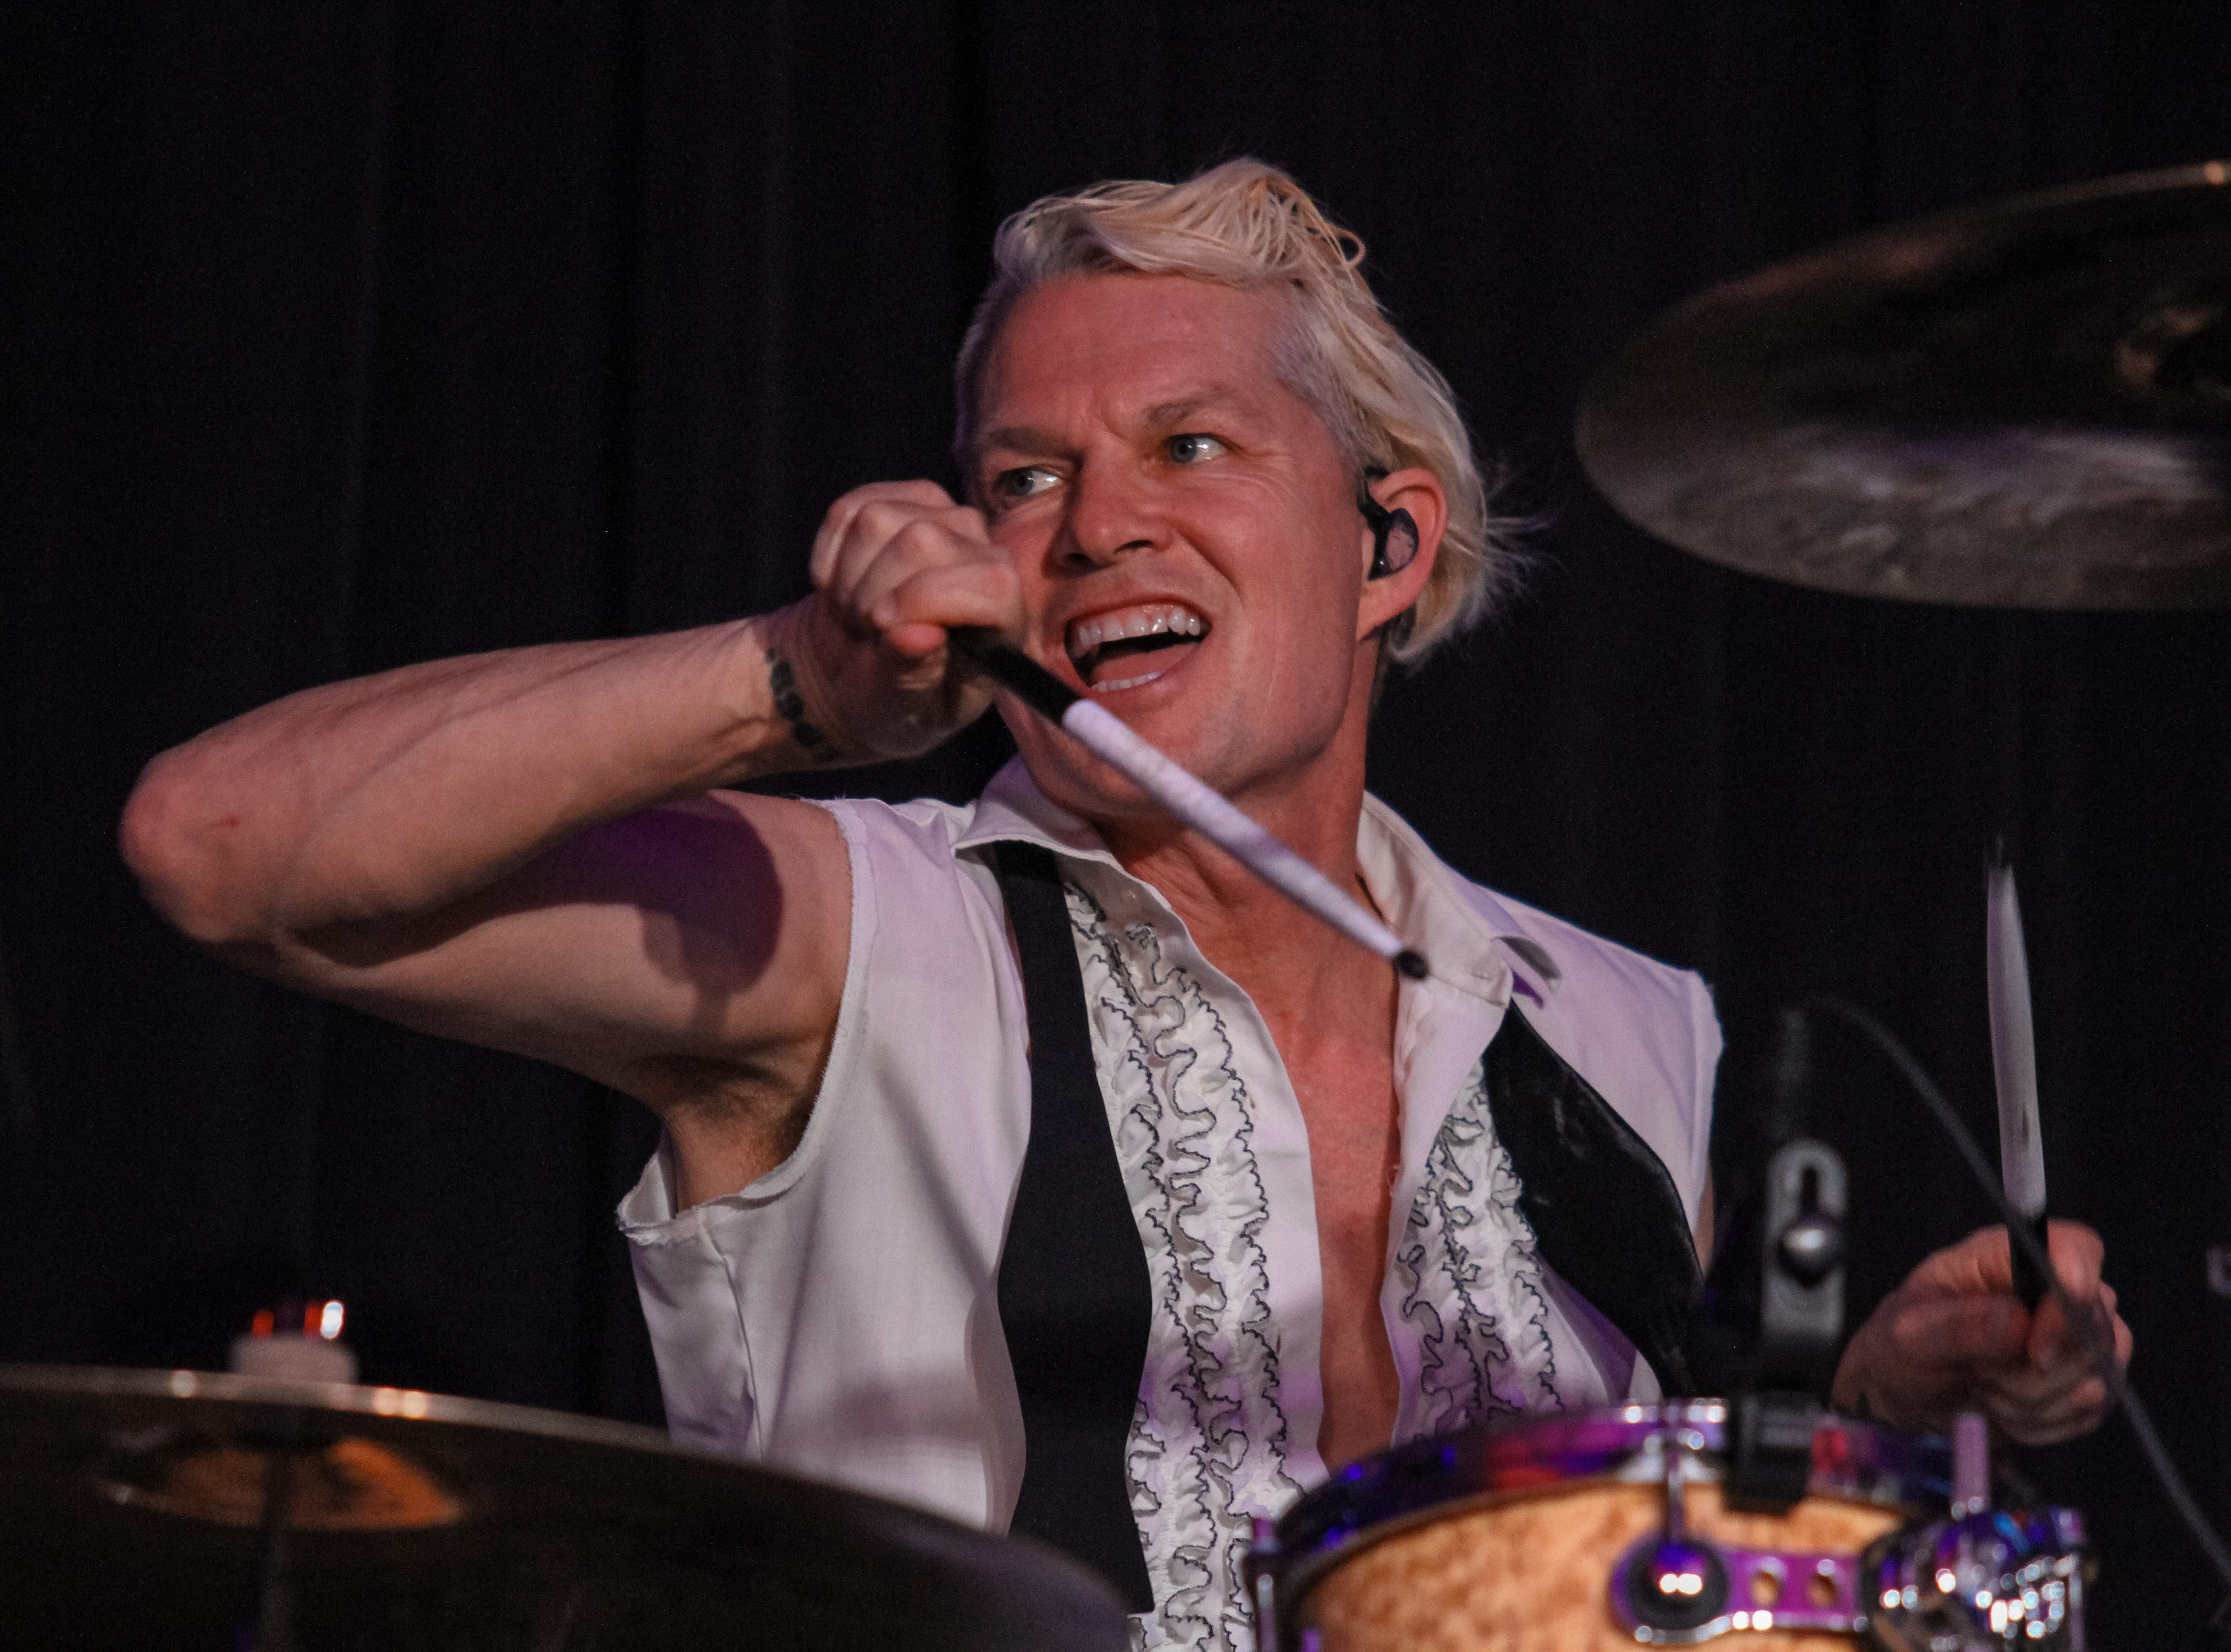 Adrian Young of No Doubt performs at Alice Cooper's Rock & Roll Fundraising Bash at the Las Sendas Golf Club in Mesa on April 27, 2019.